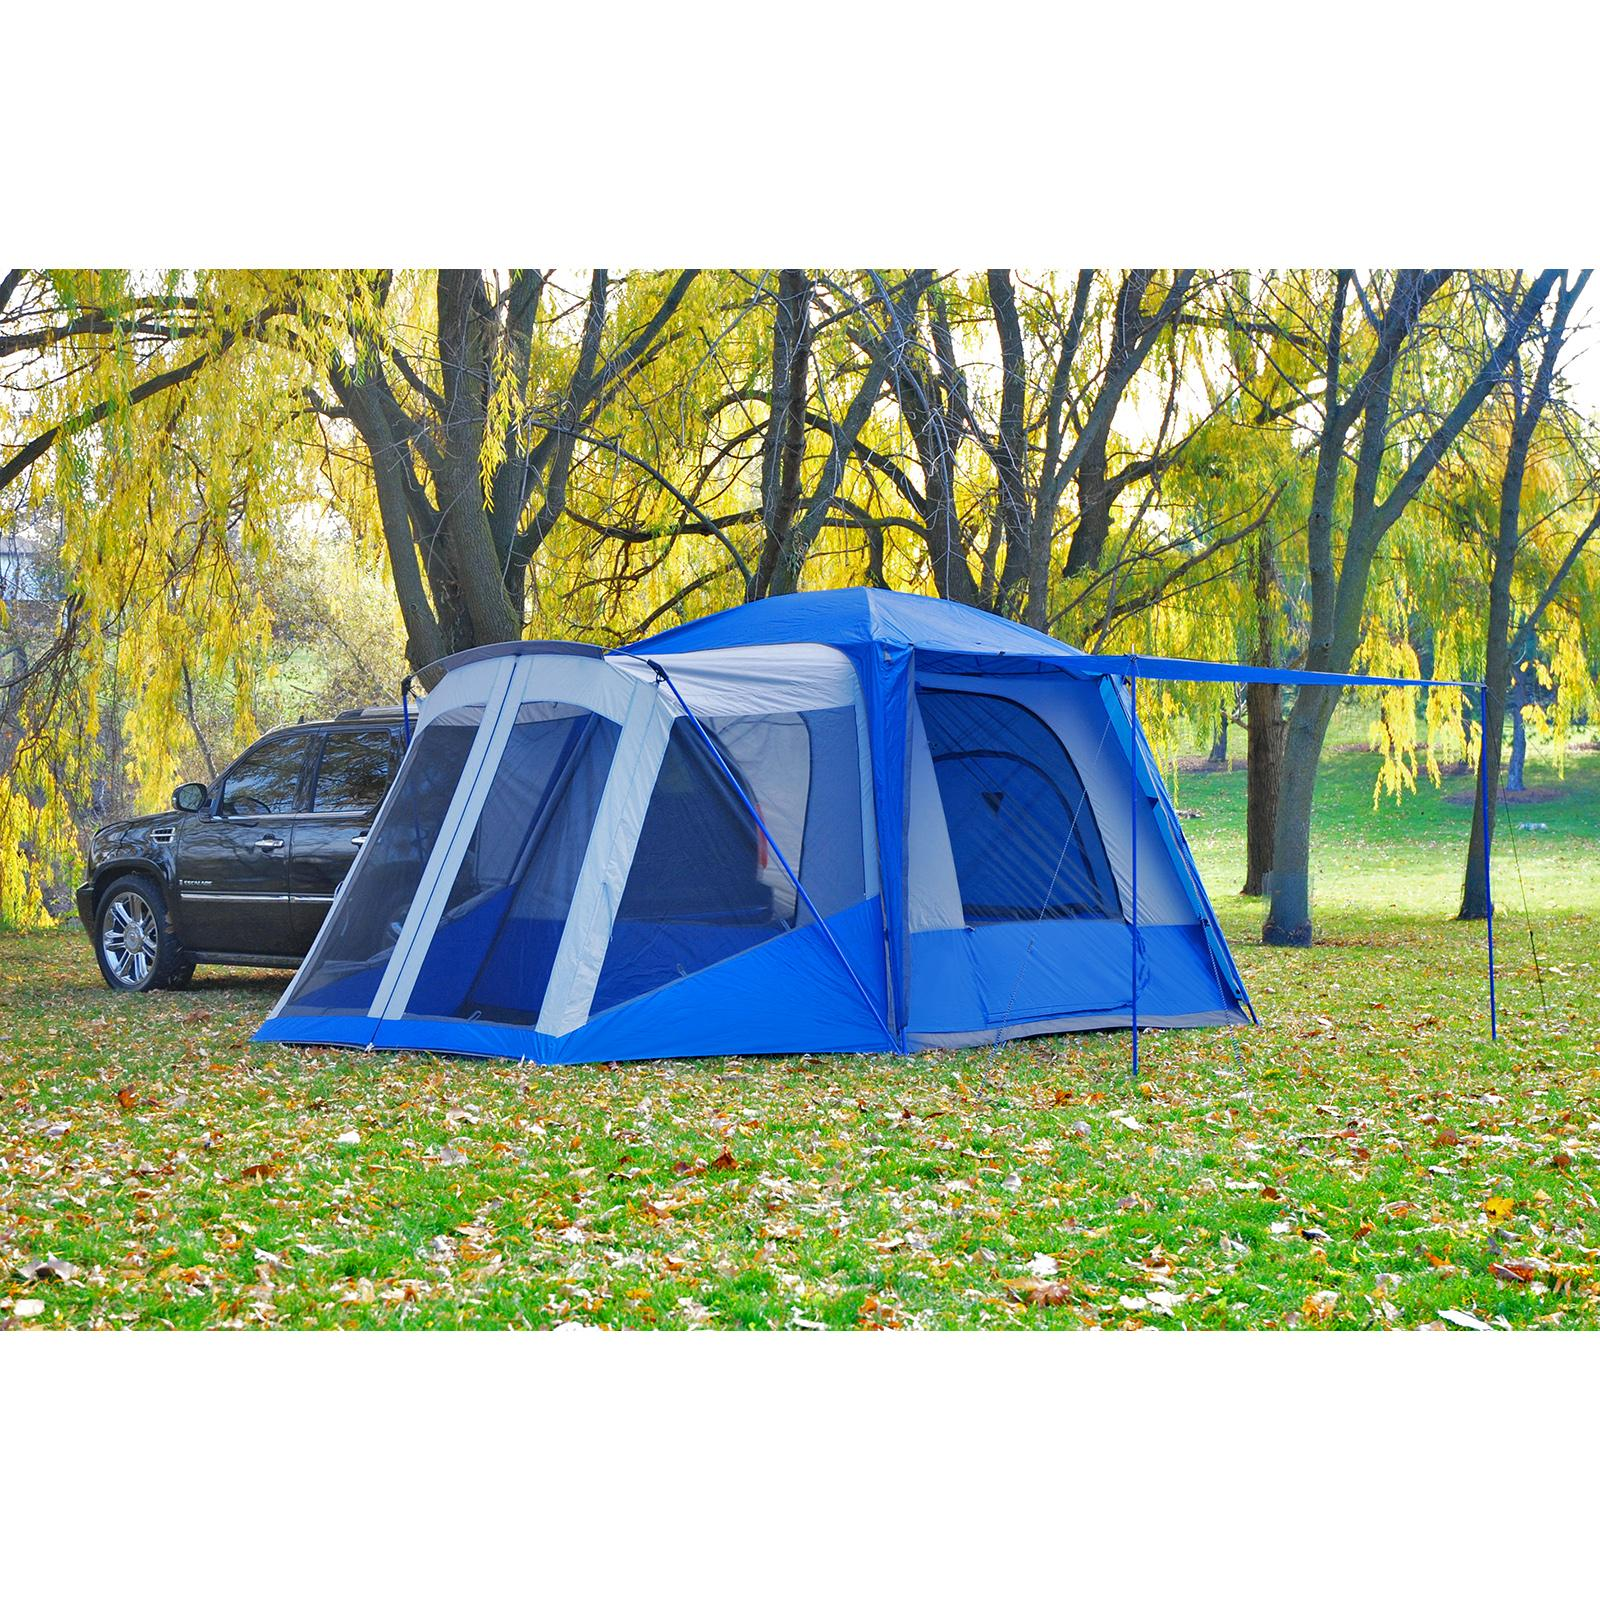 Napier Outdoors Sportz #84000 5 Person SUV Tent with Scre...